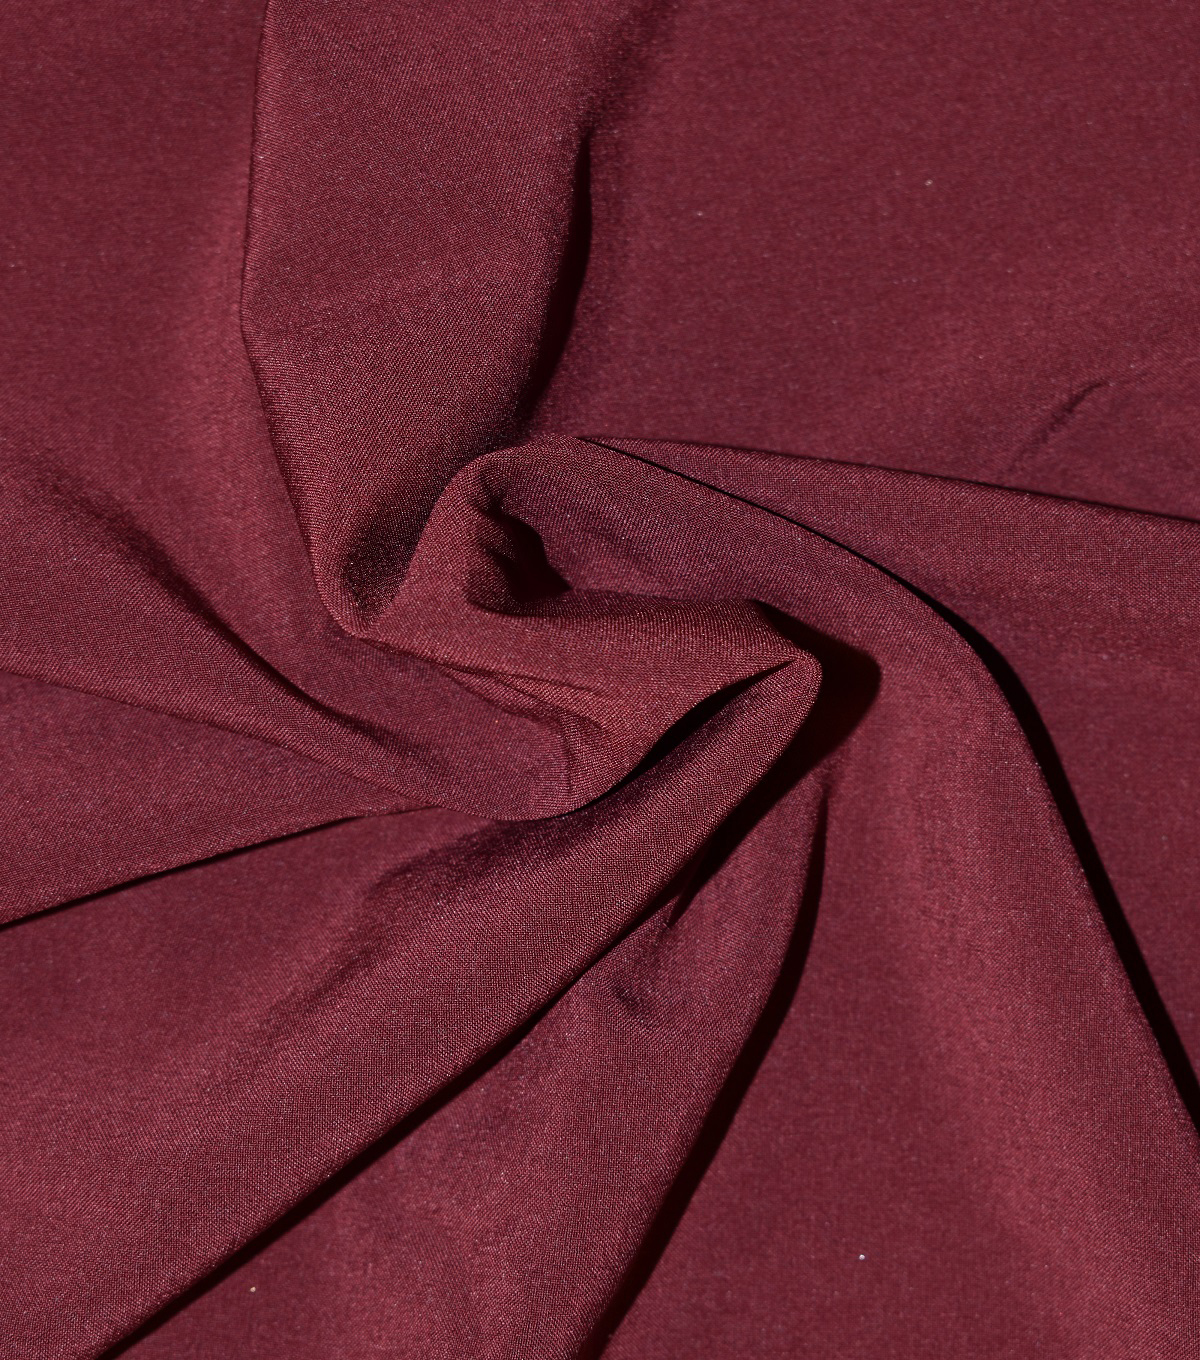 Casa Collection Stretch Matte Satin Fabric -Tawny Port